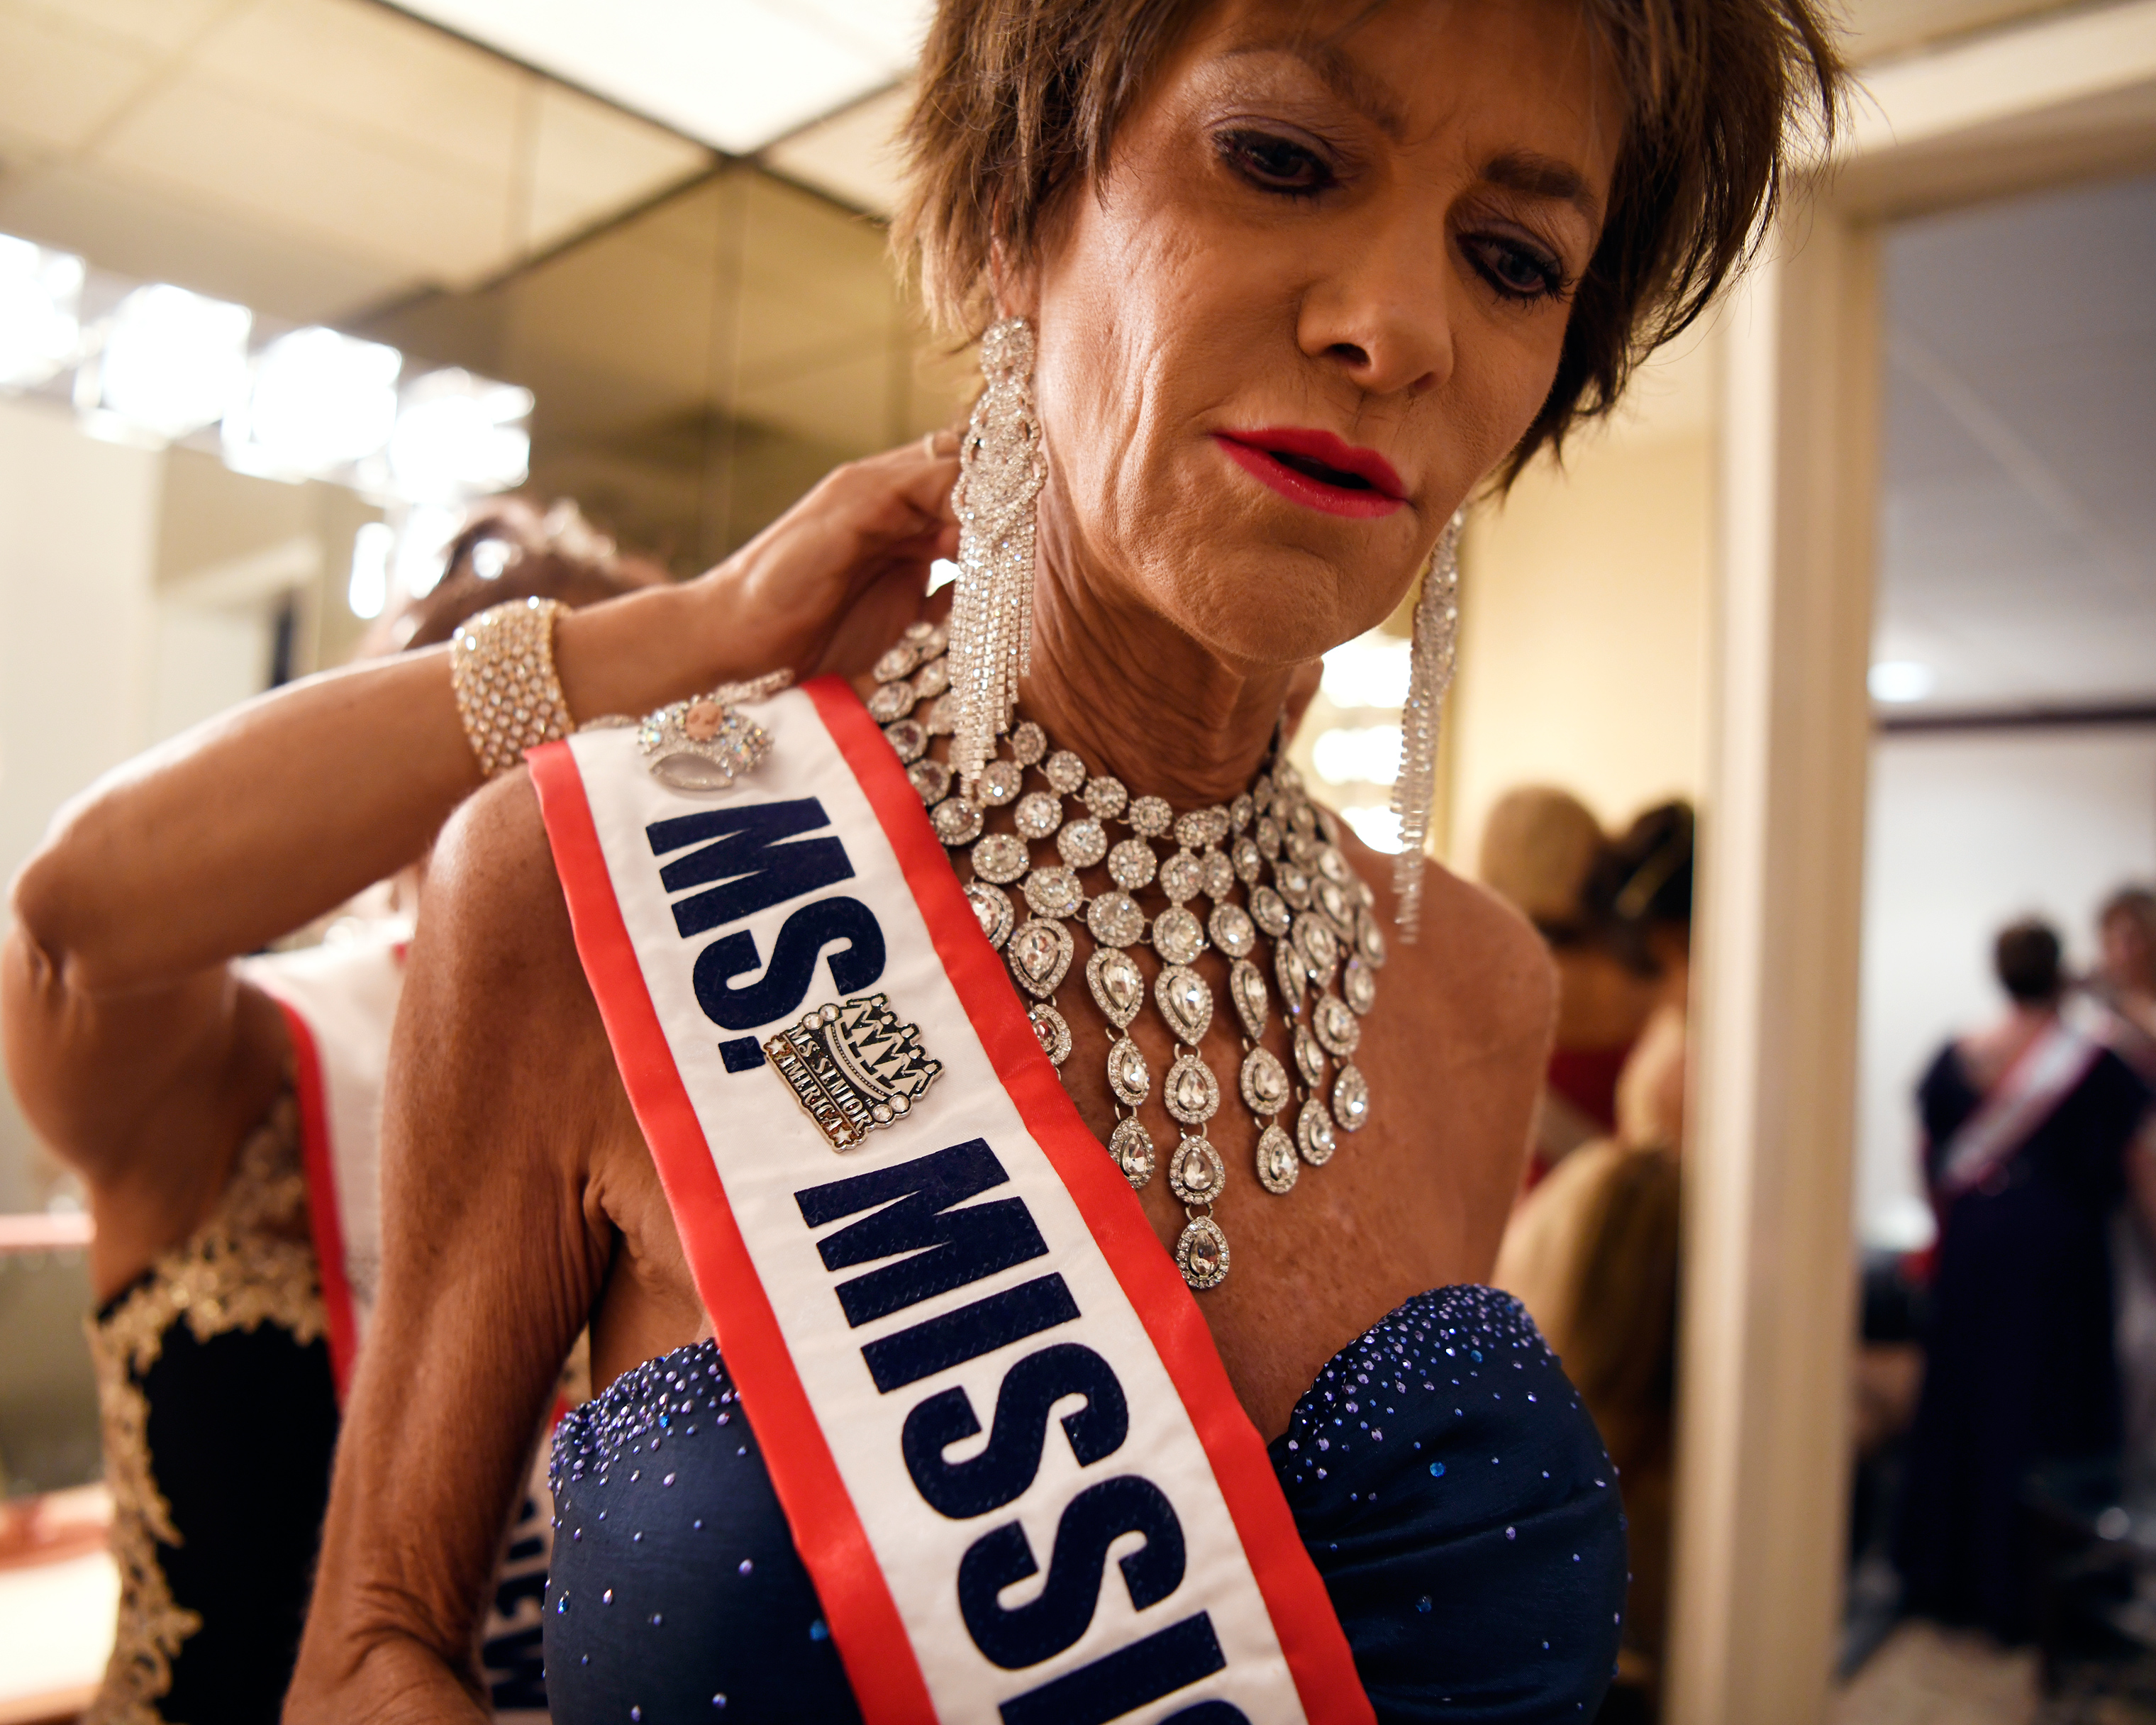 Mary Jane Lawler, Ms. Mississippi, gets ready before the Ms. Senior America Pageant finale.